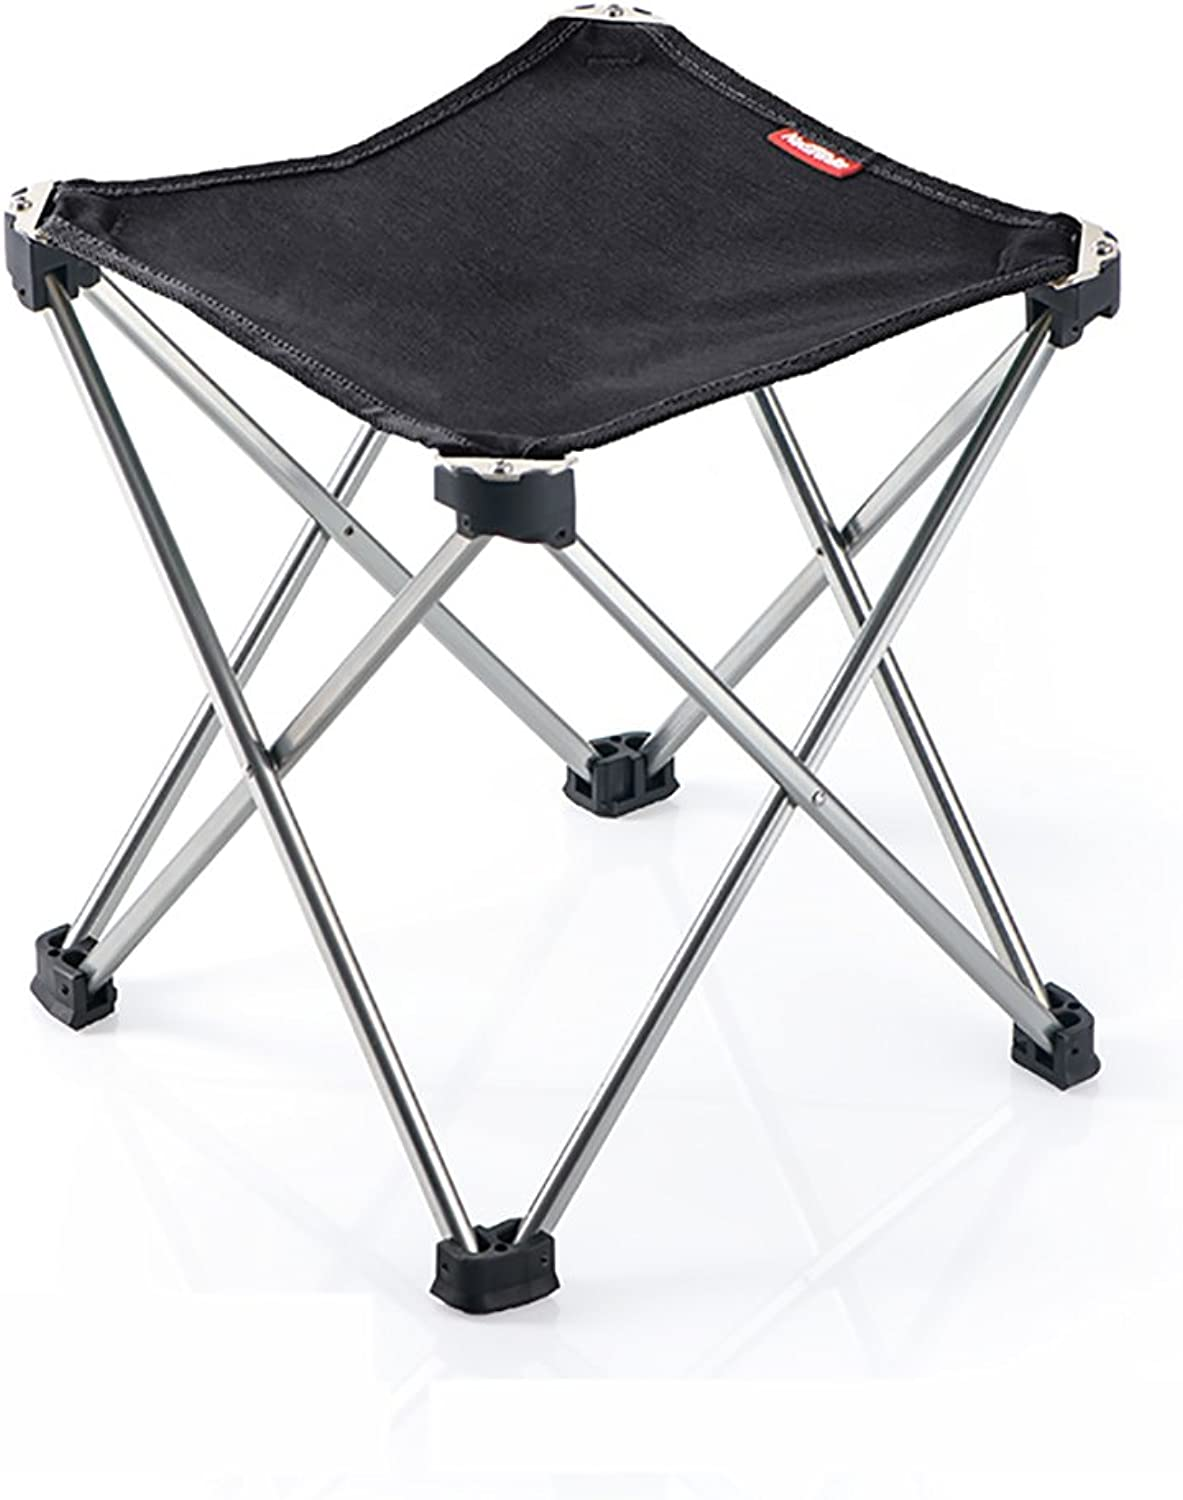 Camping Chair Outdoor Folding Chair, Fishing Leisure Chair, Breathable Solid Portable Beach Chair,